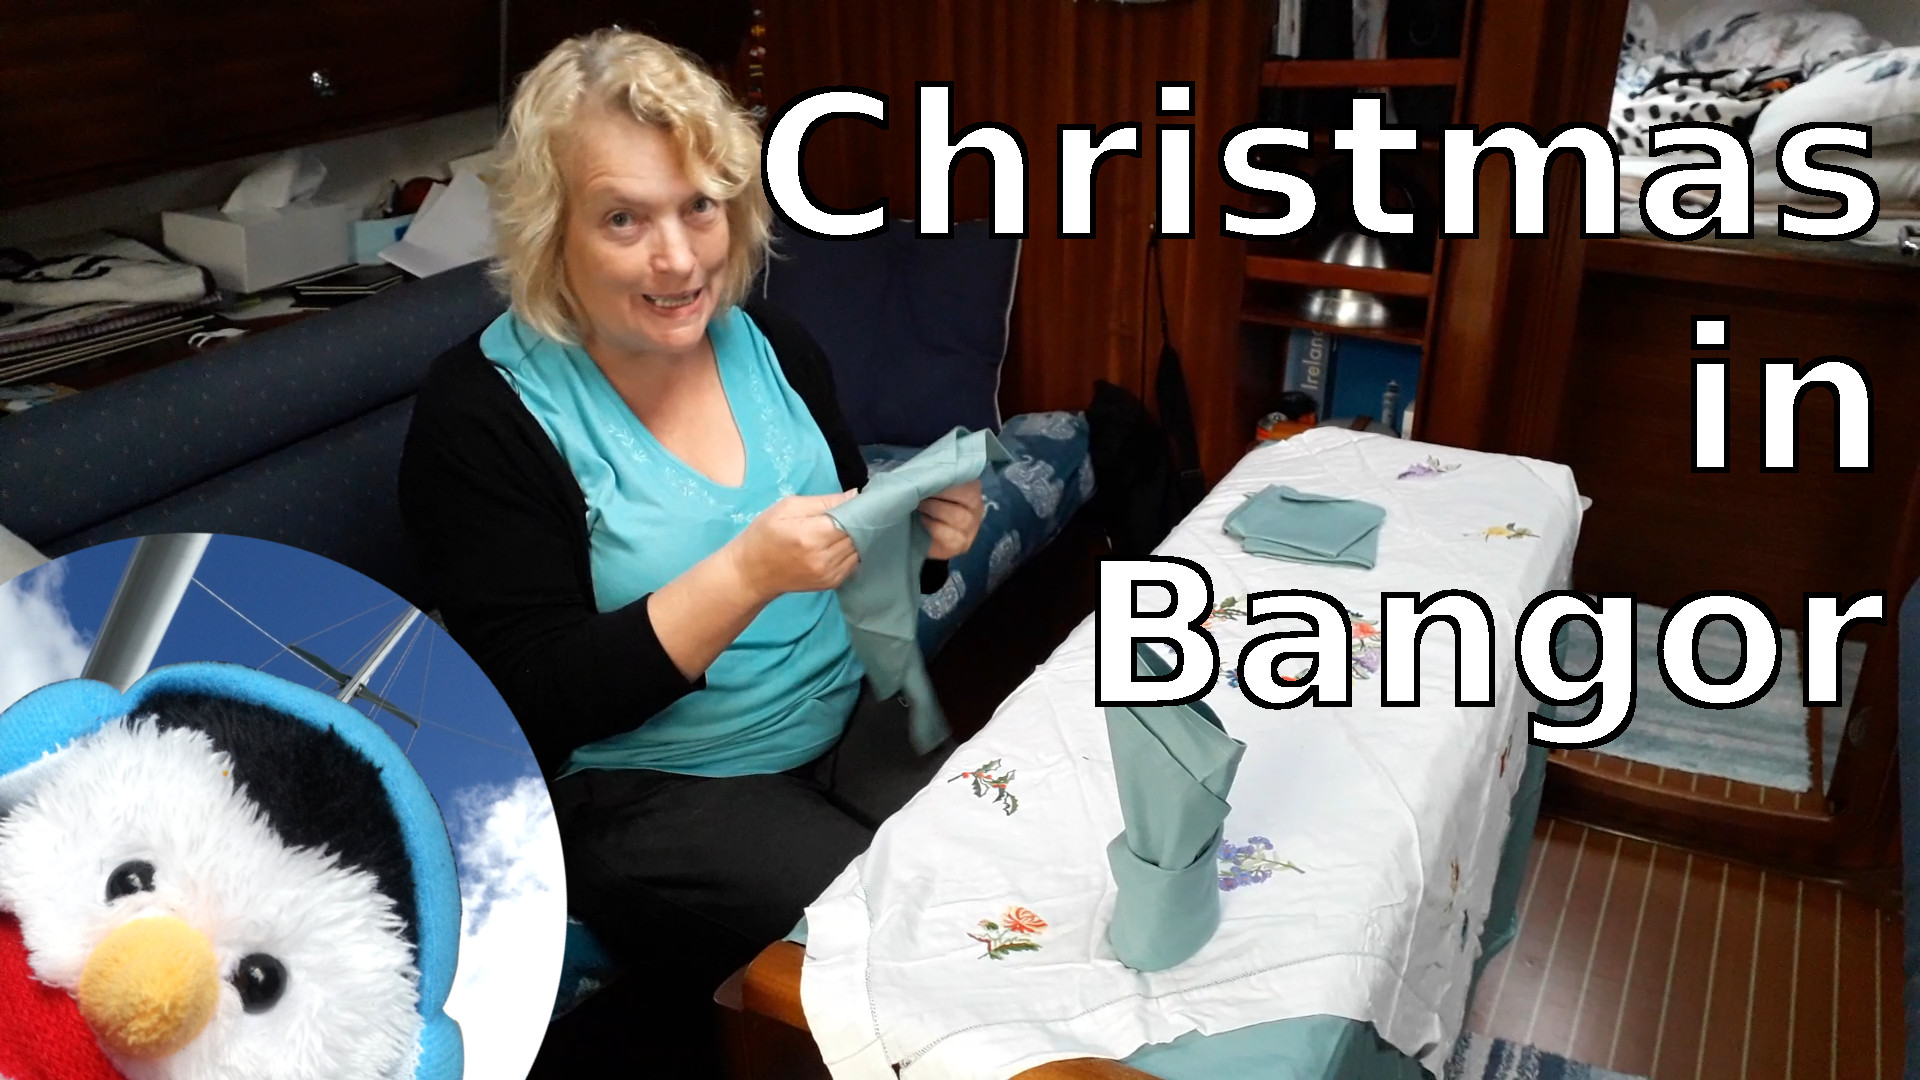 Watch our 'Christmas in Bangor' video and add comments etc.